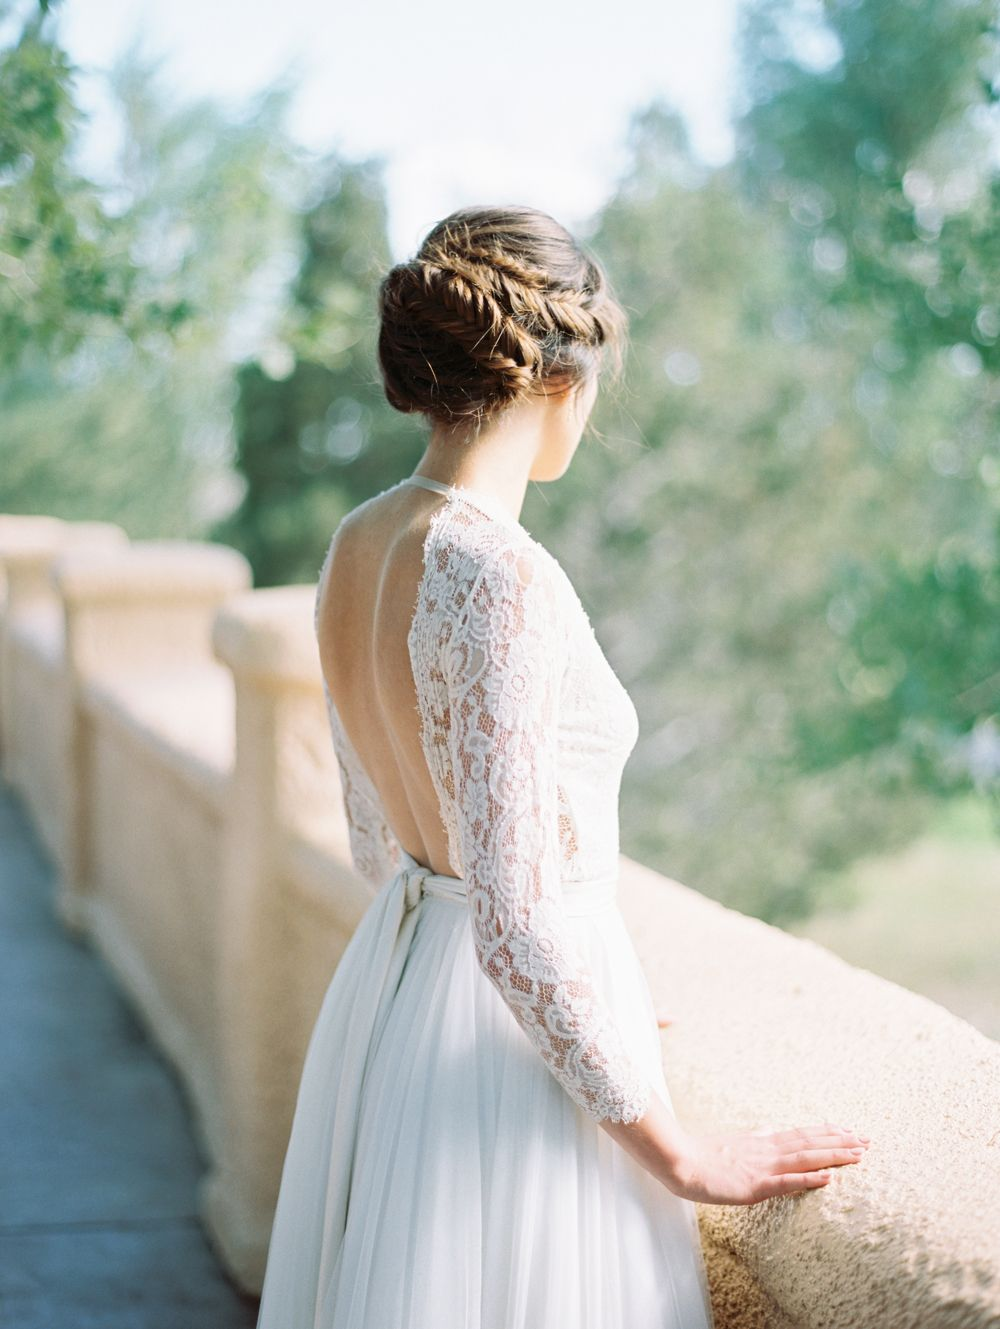 Backless dresses for the winter bride wedding dress vaulting and